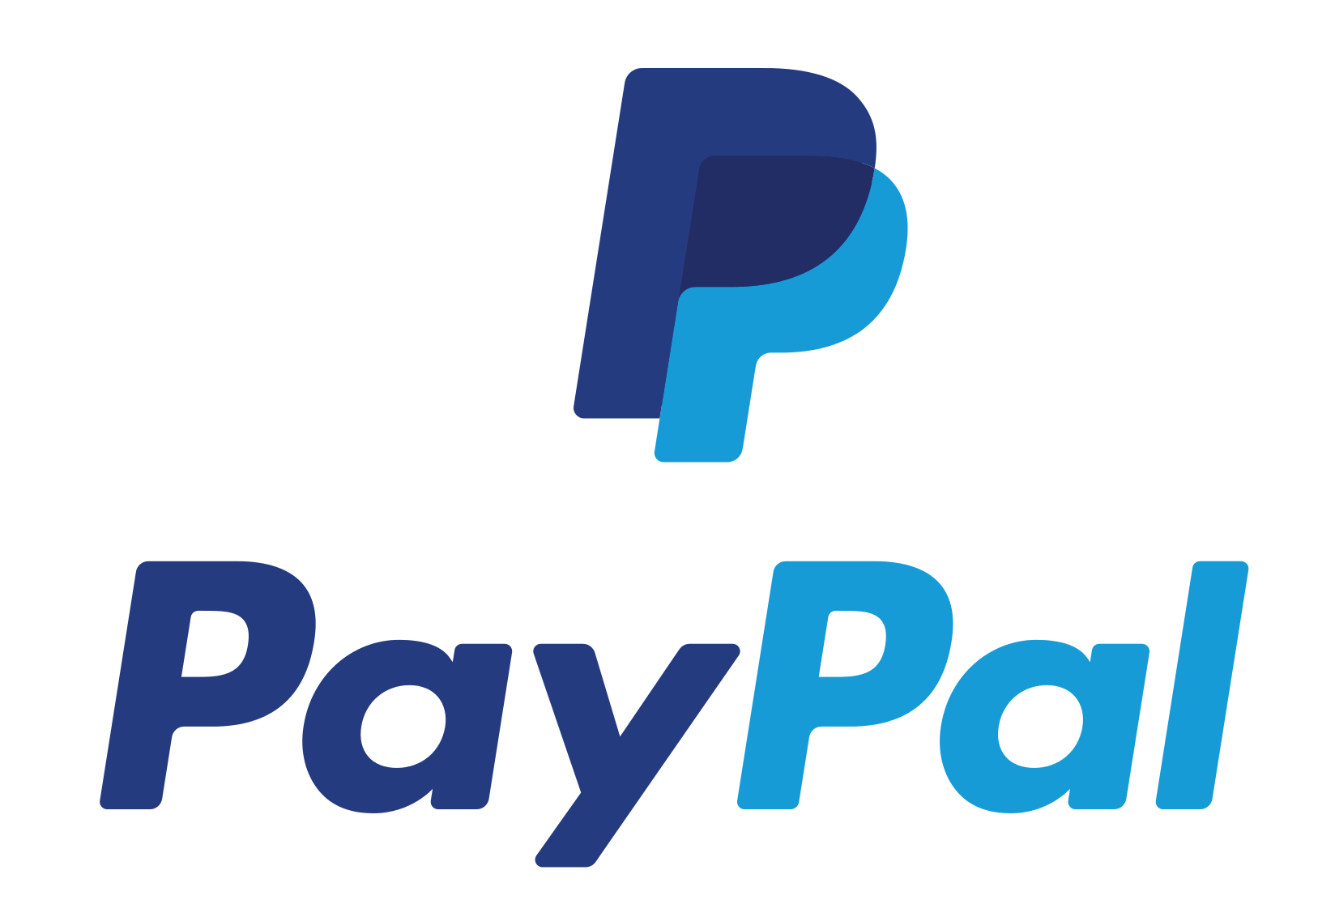 Paypal explosion